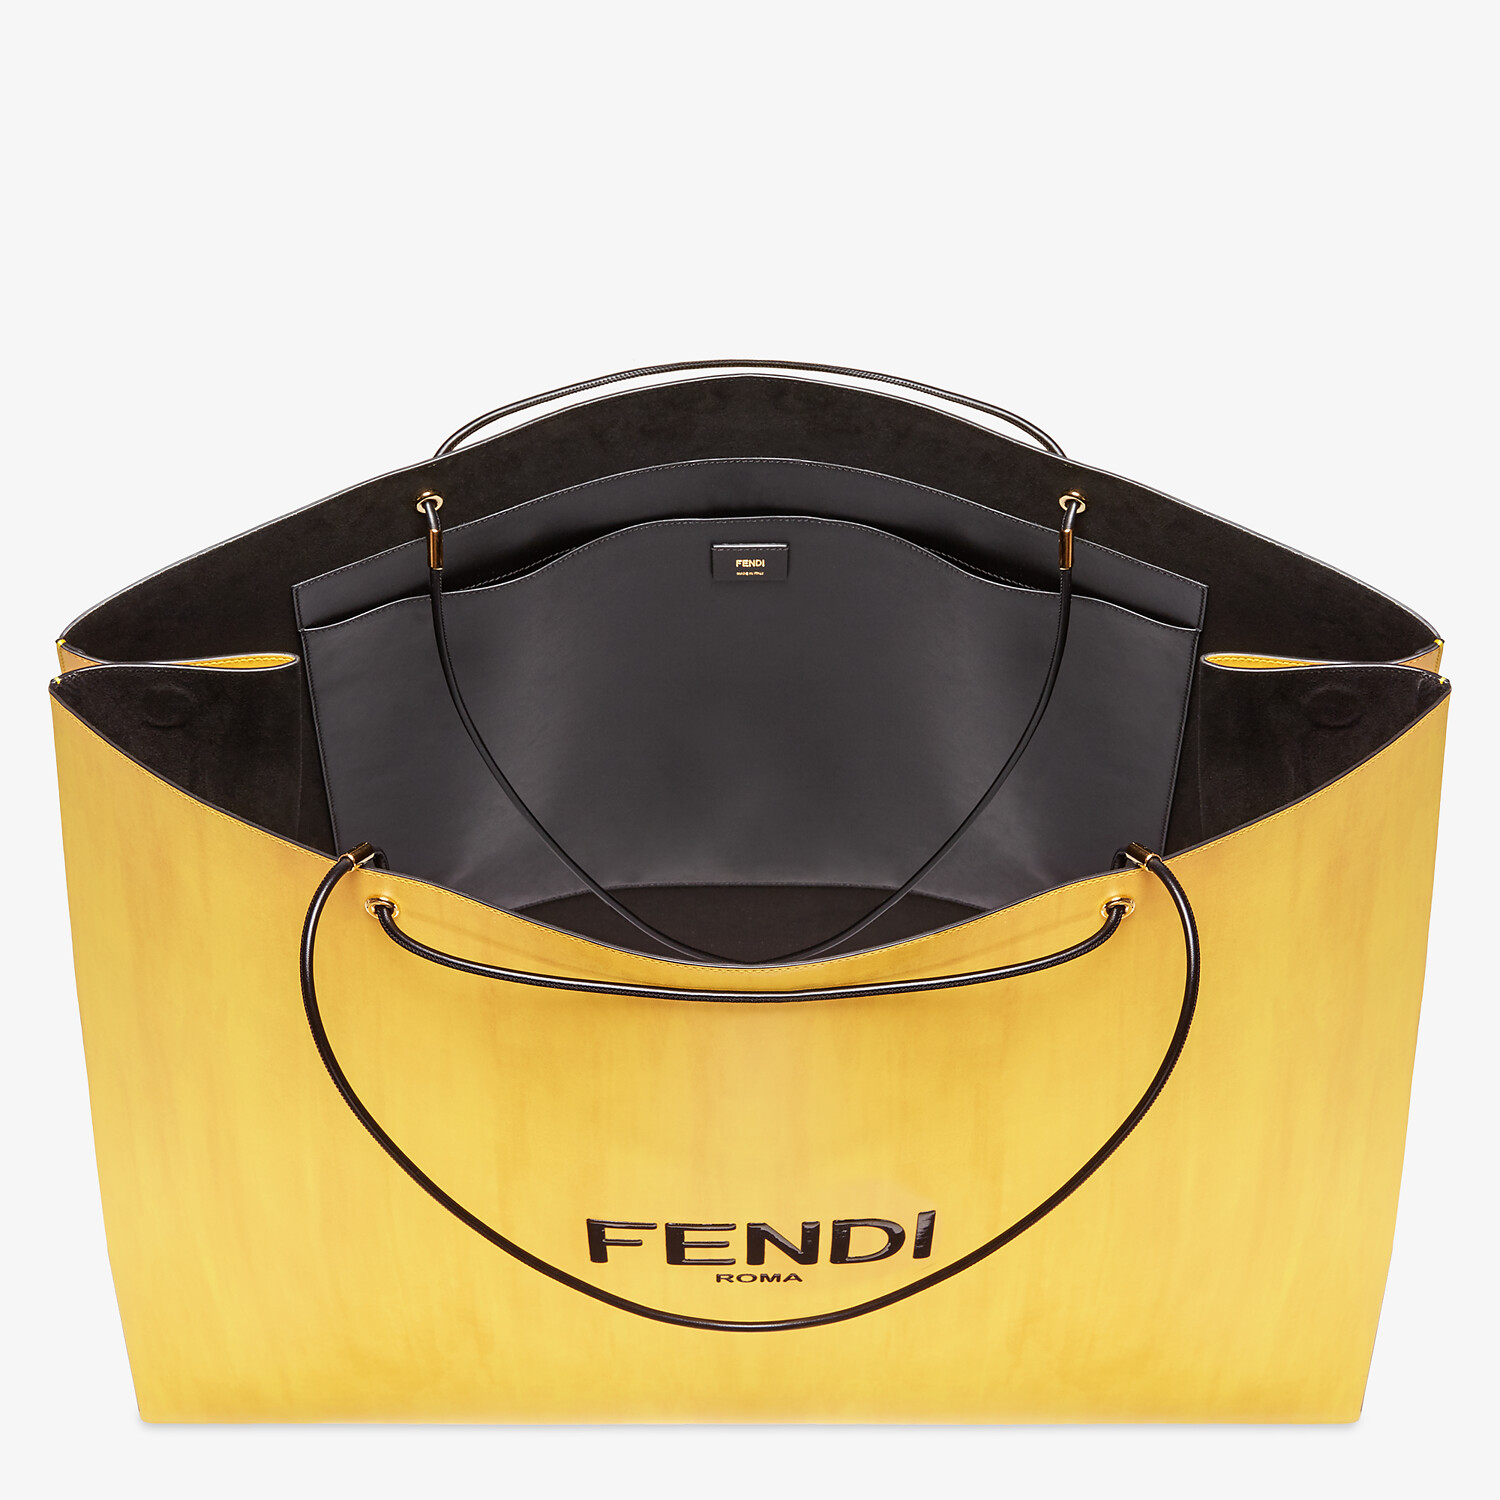 FENDI FENDI PACK LARGE SHOPPING BAG - Yellow leather bag - view 4 detail